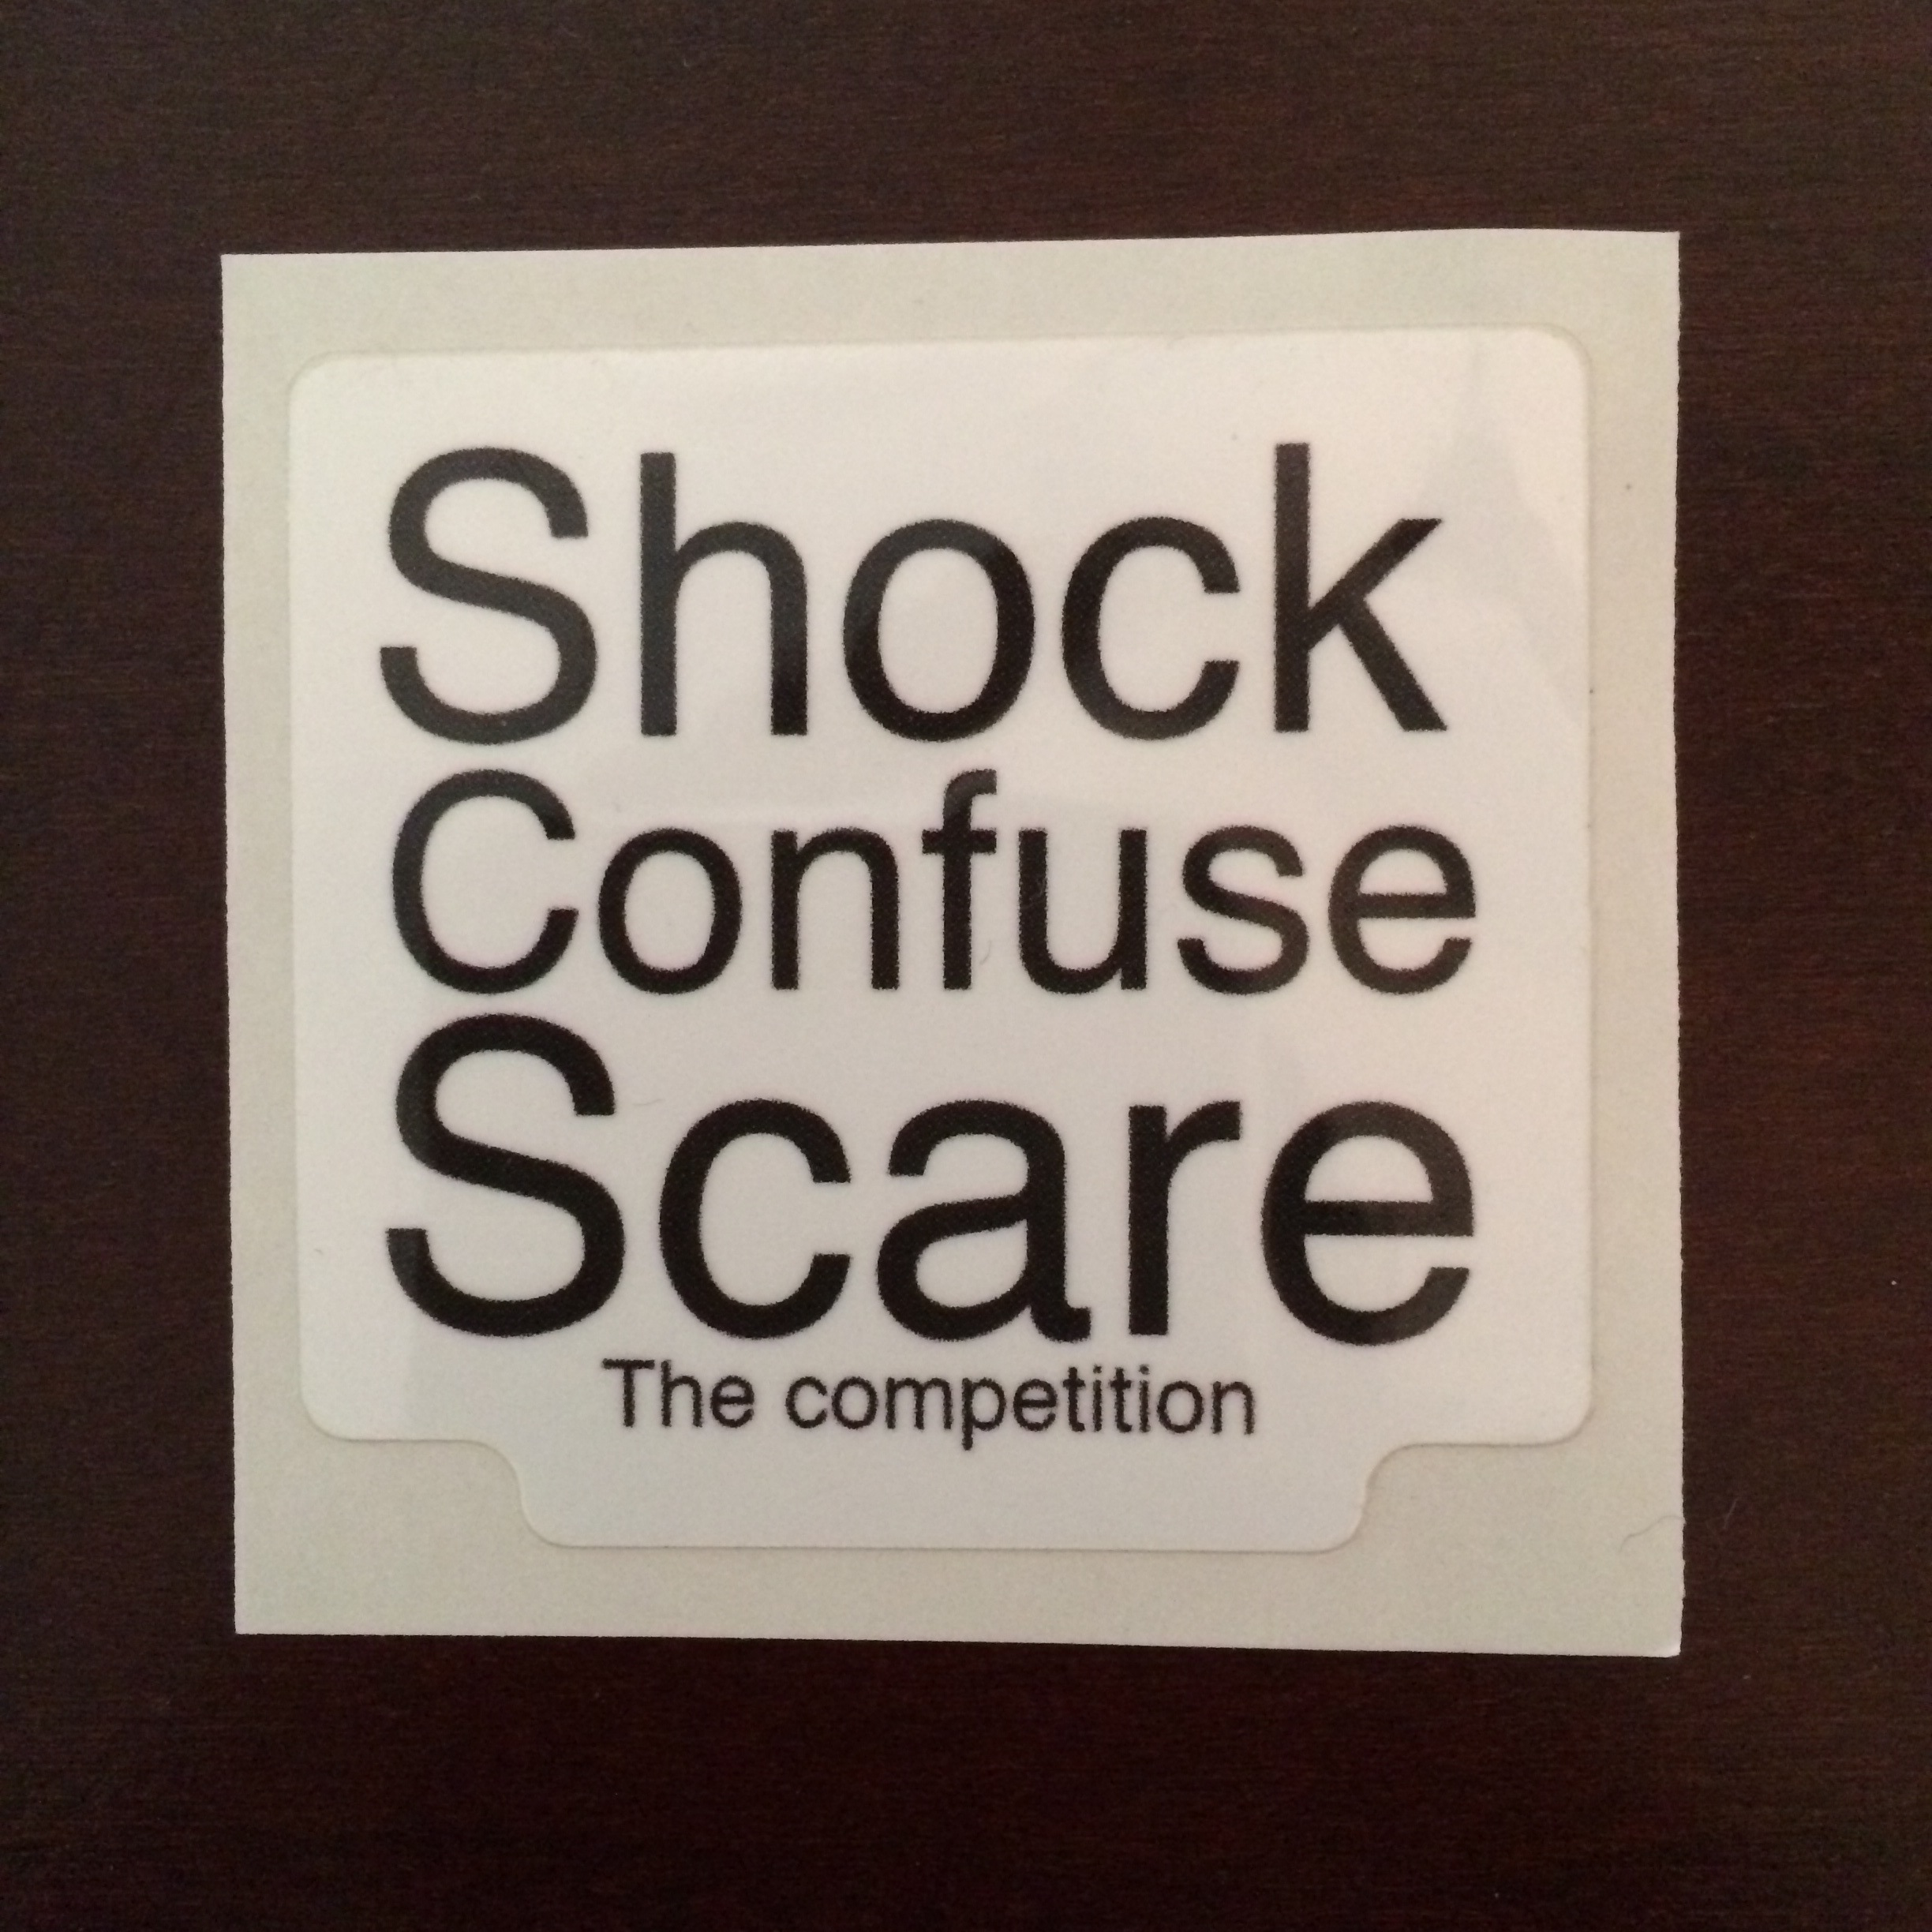 Shock Confuse Scare